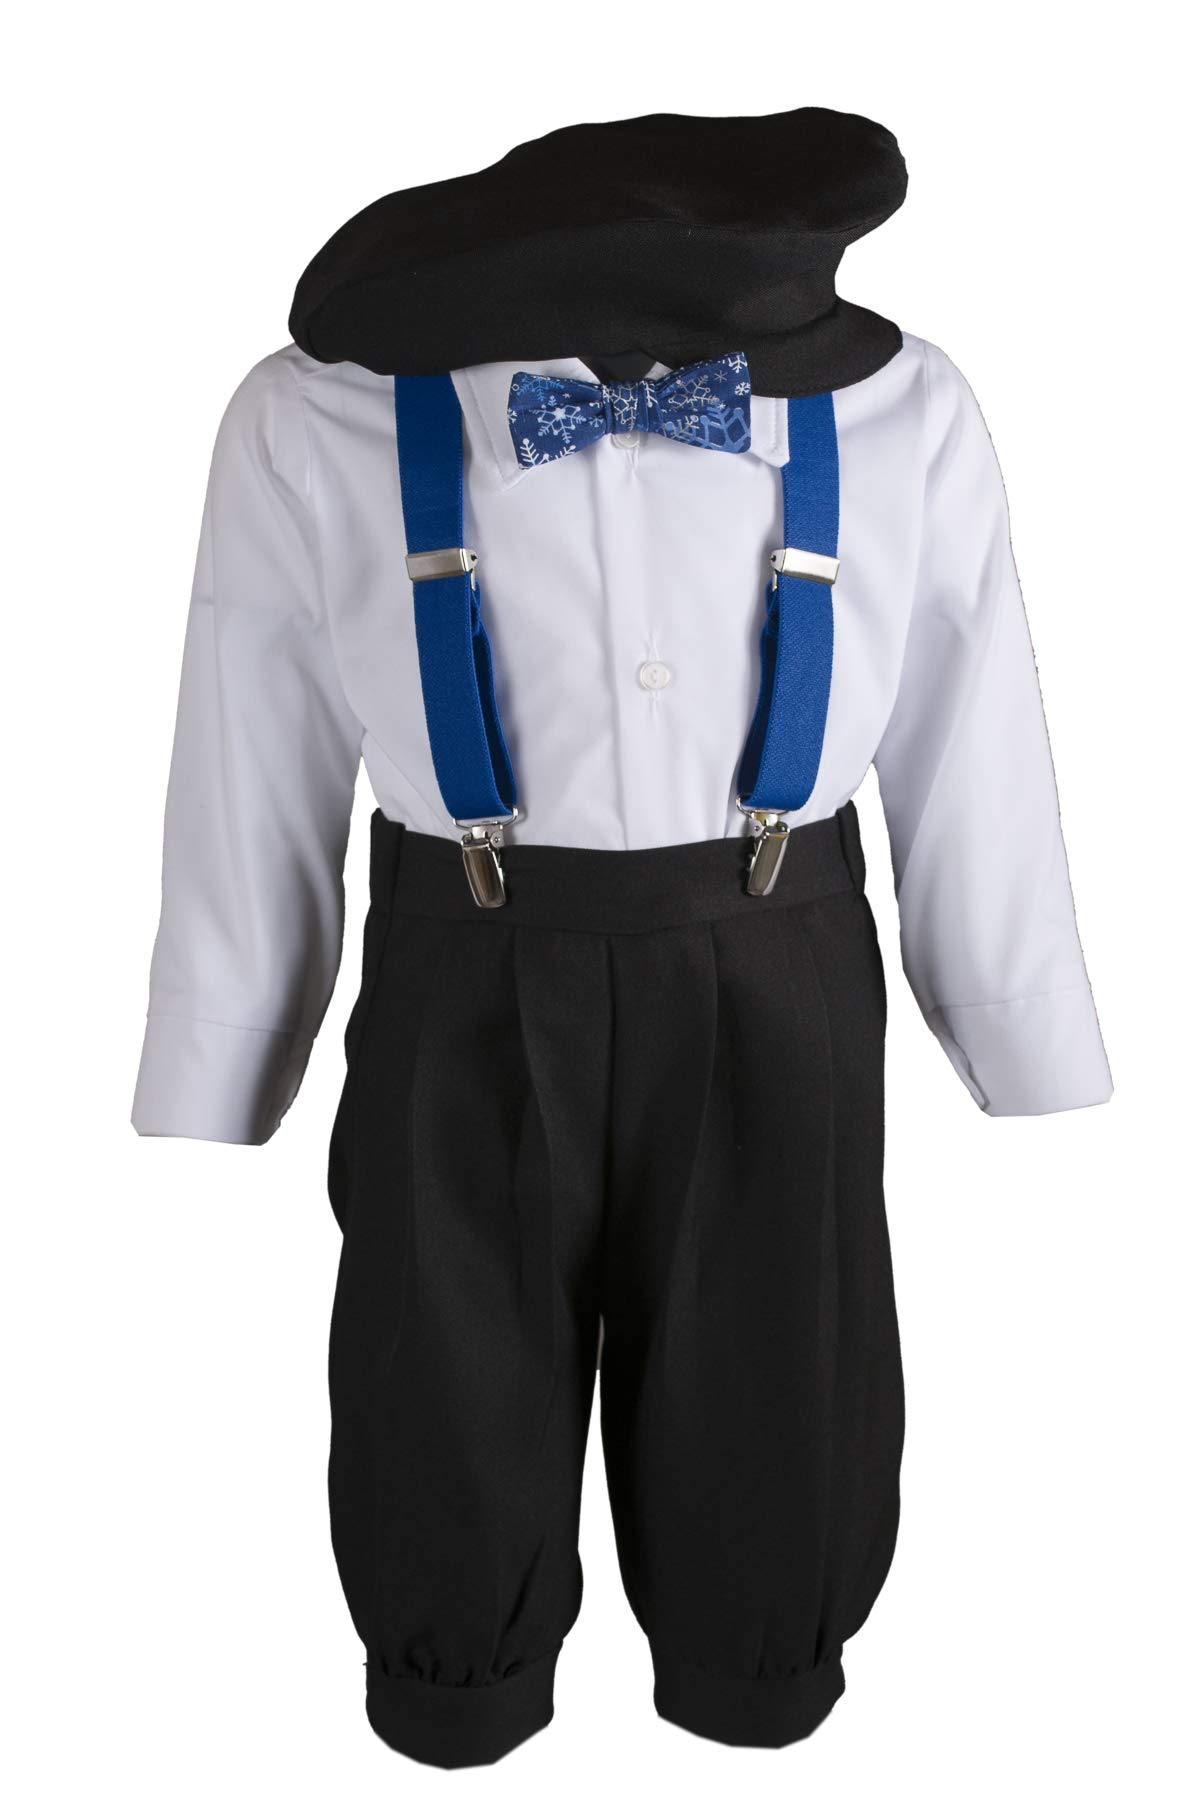 Boys Black Knickers Pageboy Cap with Royal Blue Suspenders & Snowflake Bow Tie (6B) by Tuxgear (Image #1)